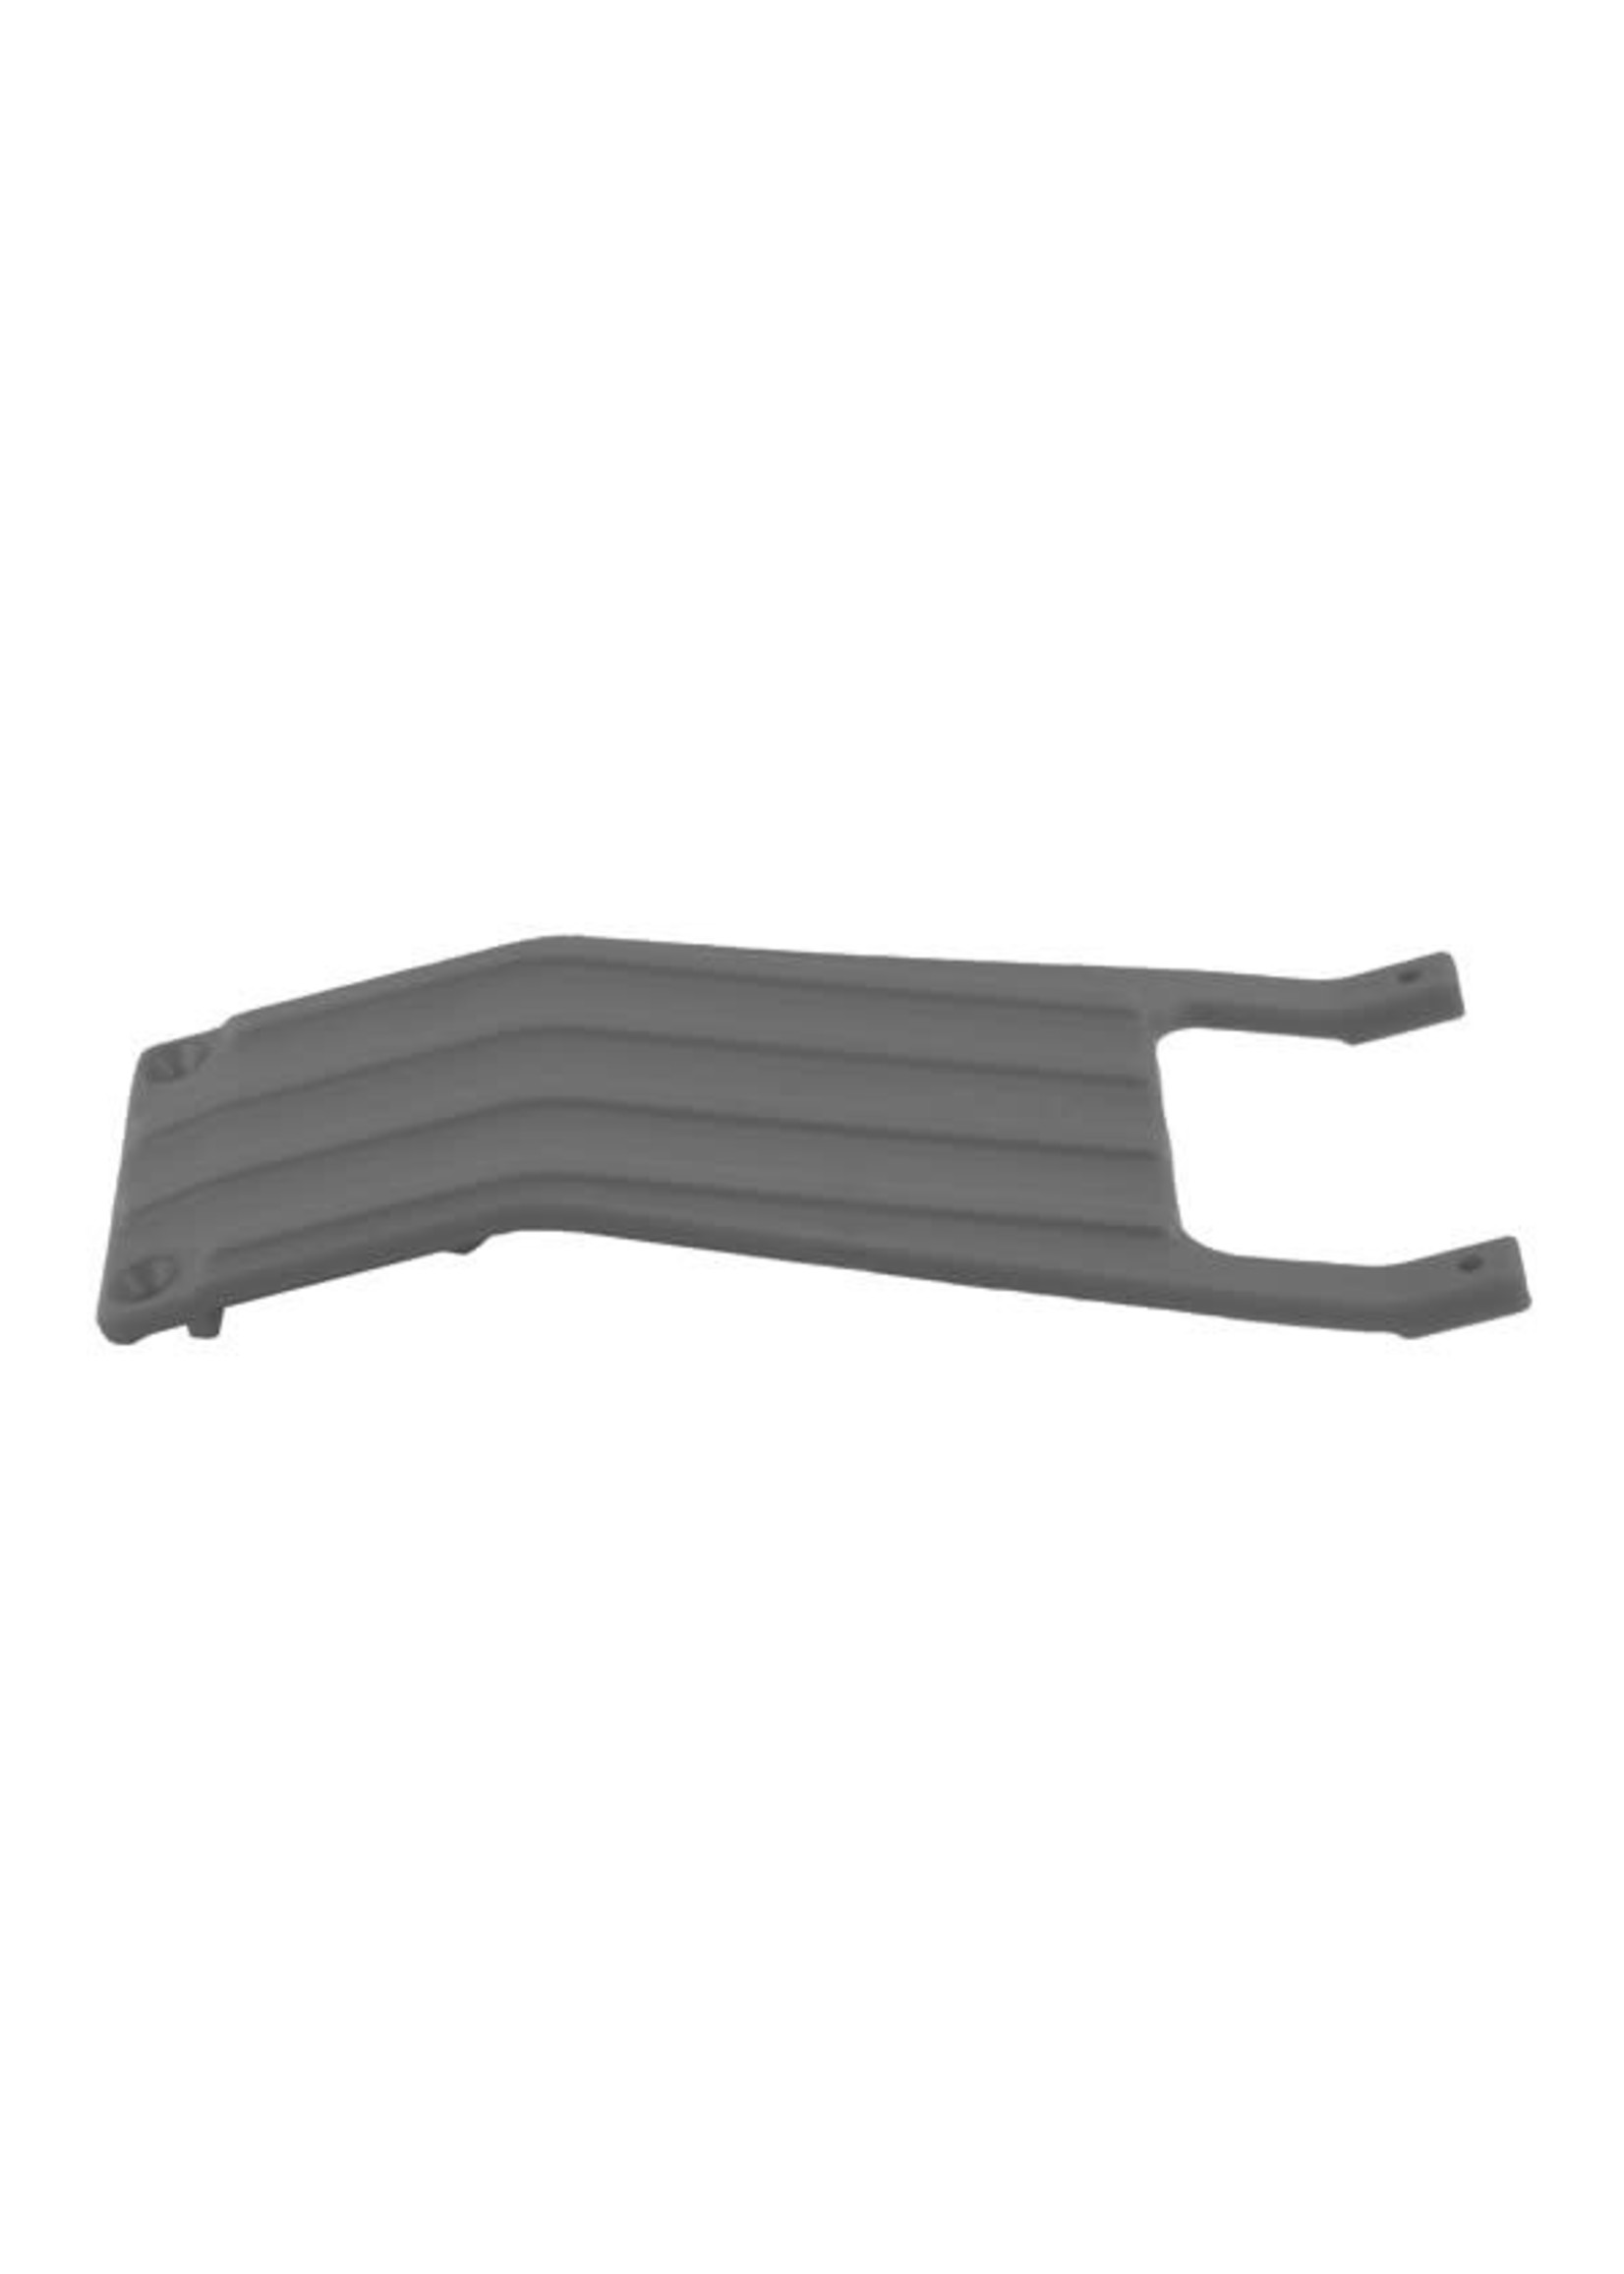 RPM RPM81256 RPM Front Skid Plate, for Slash, Gray